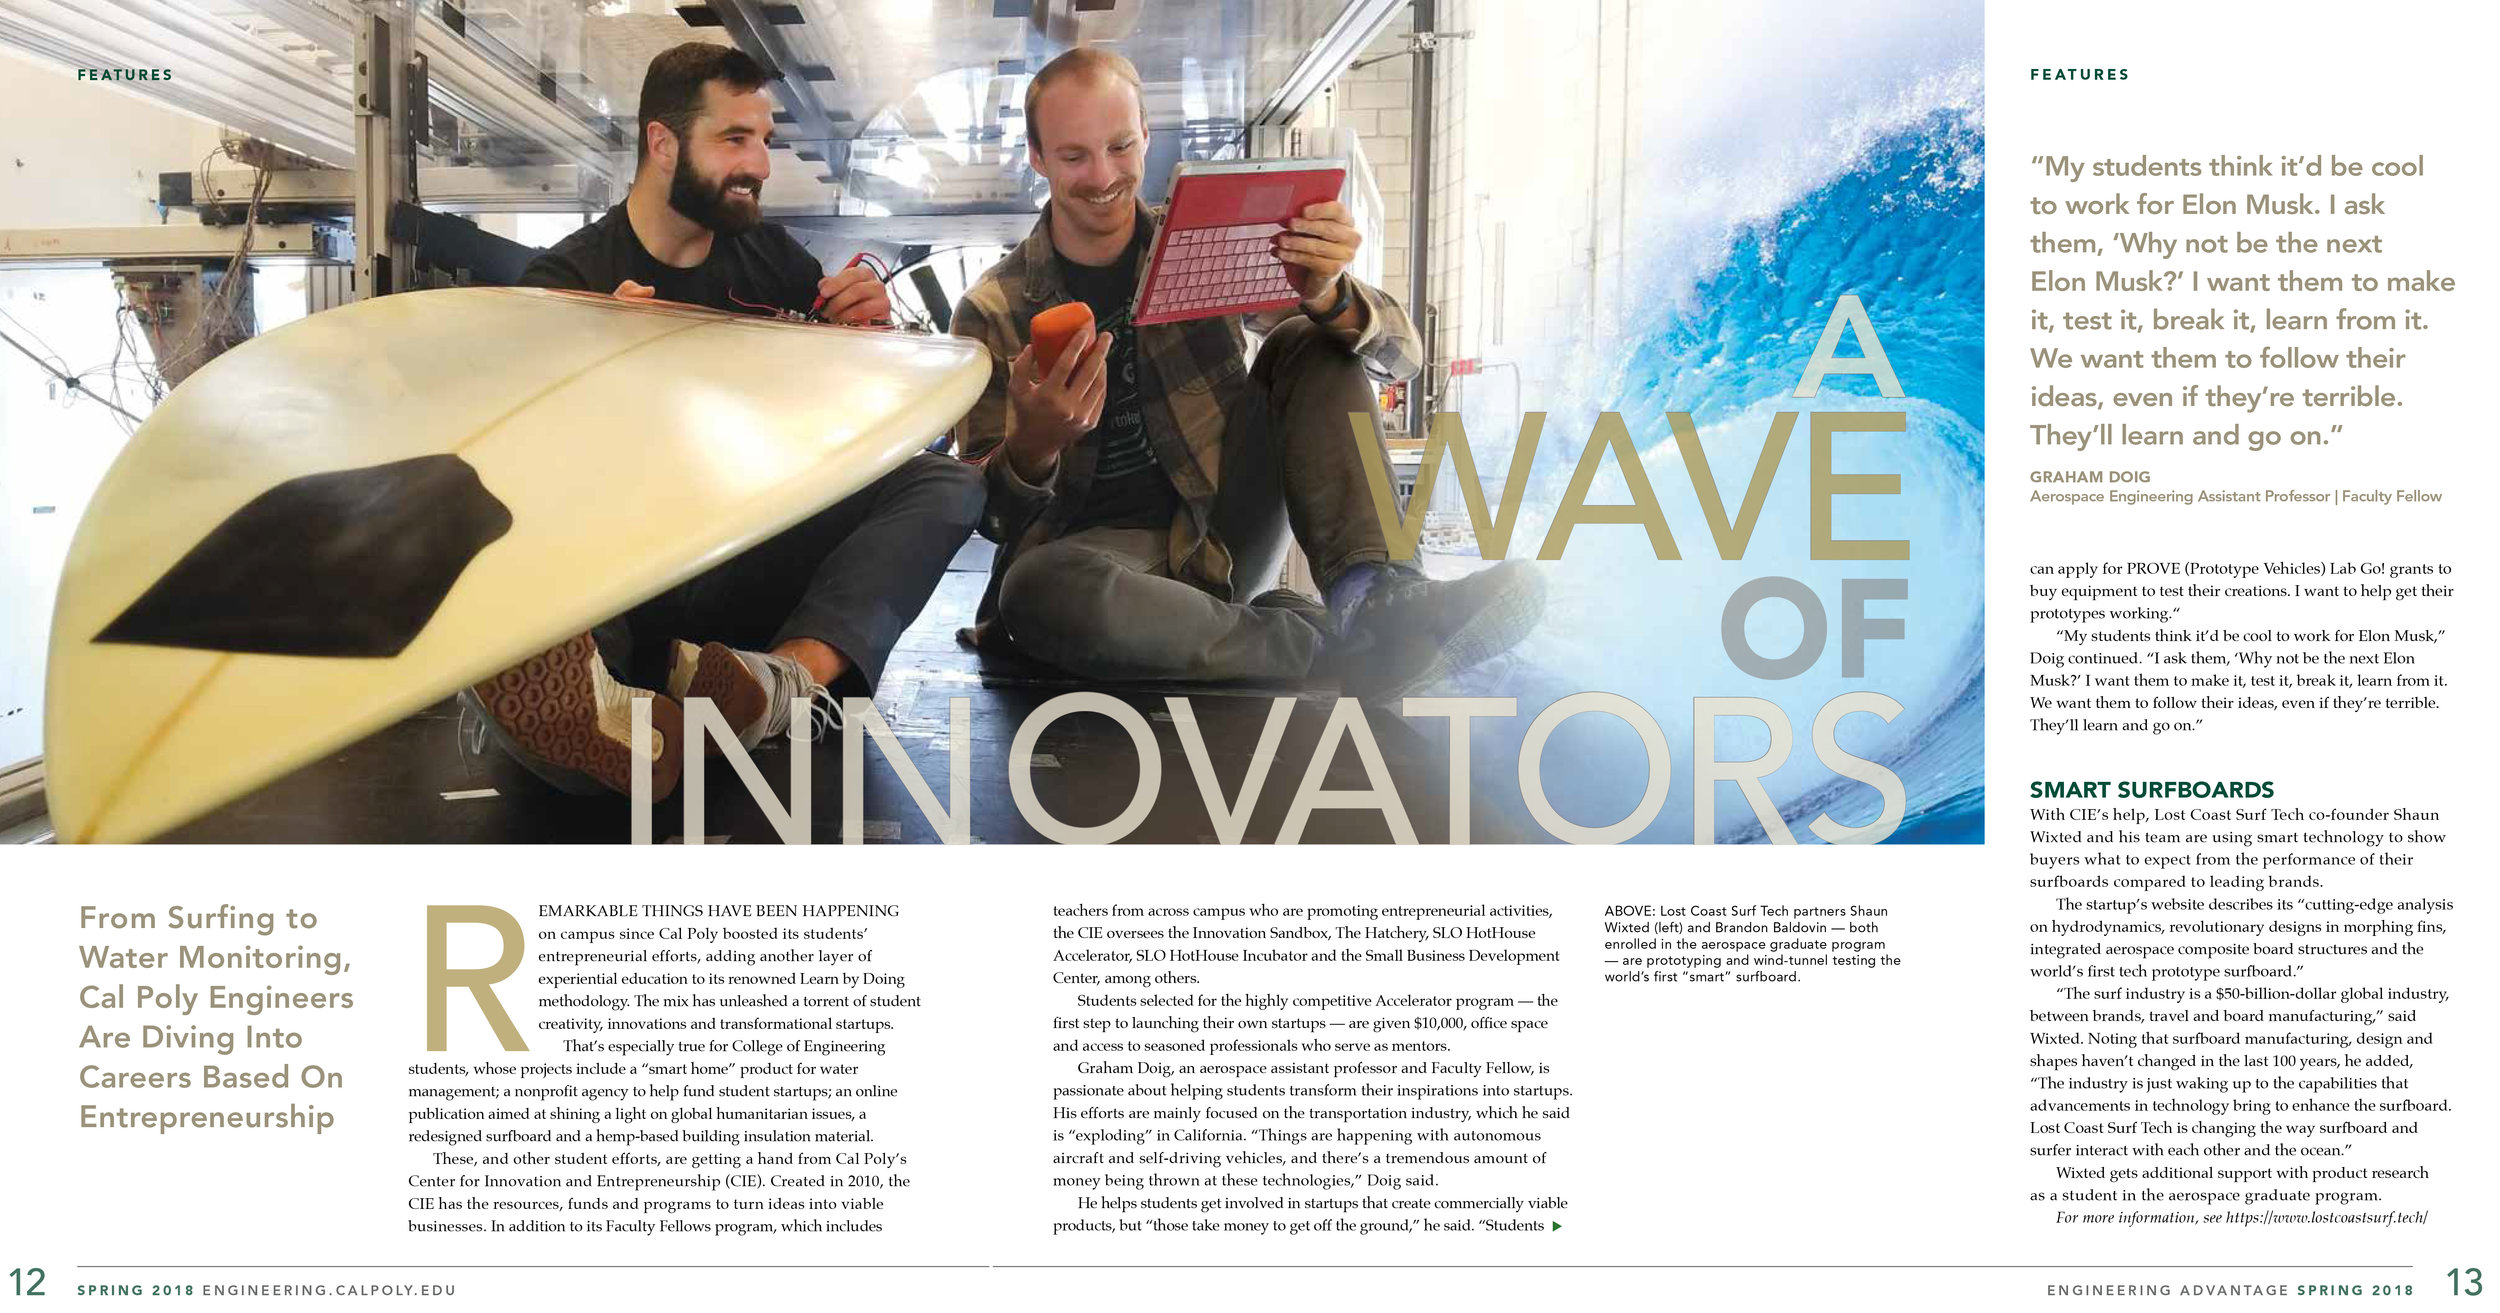 Lost Coast Surf in Cal Poly's Engineering Advantage magazine.